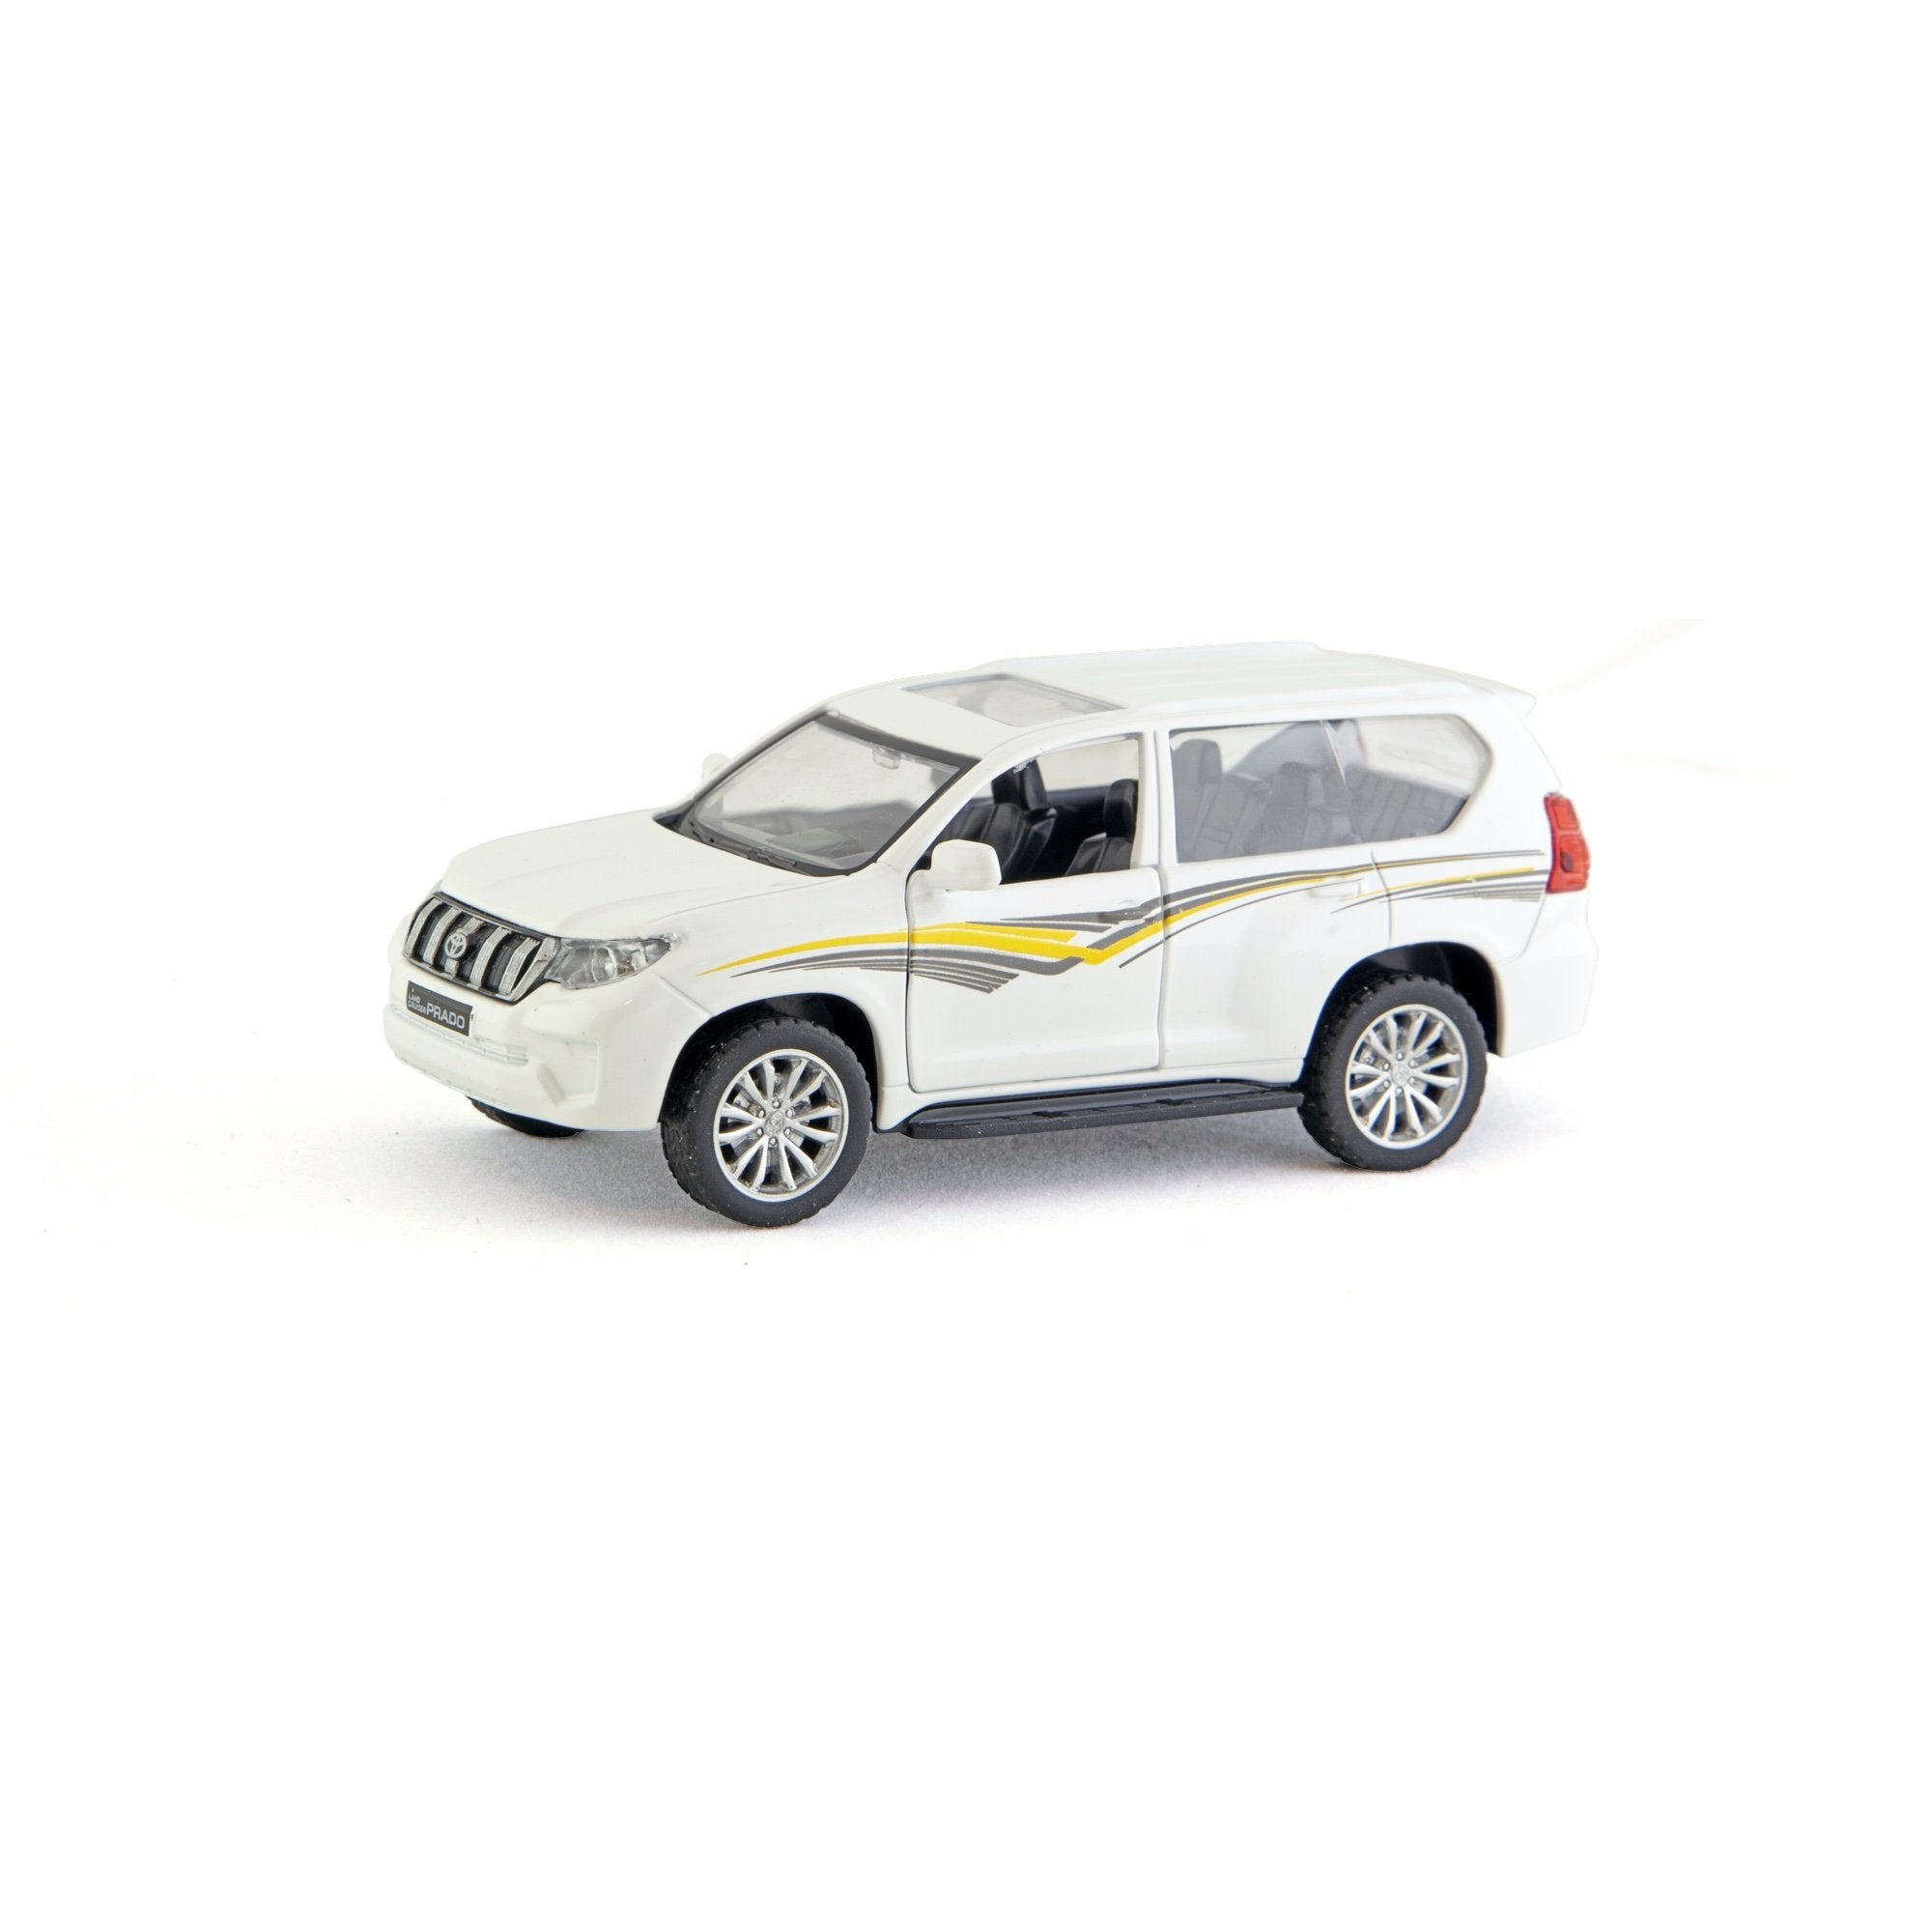 Land Cruiser Prado 1:43 Hvit